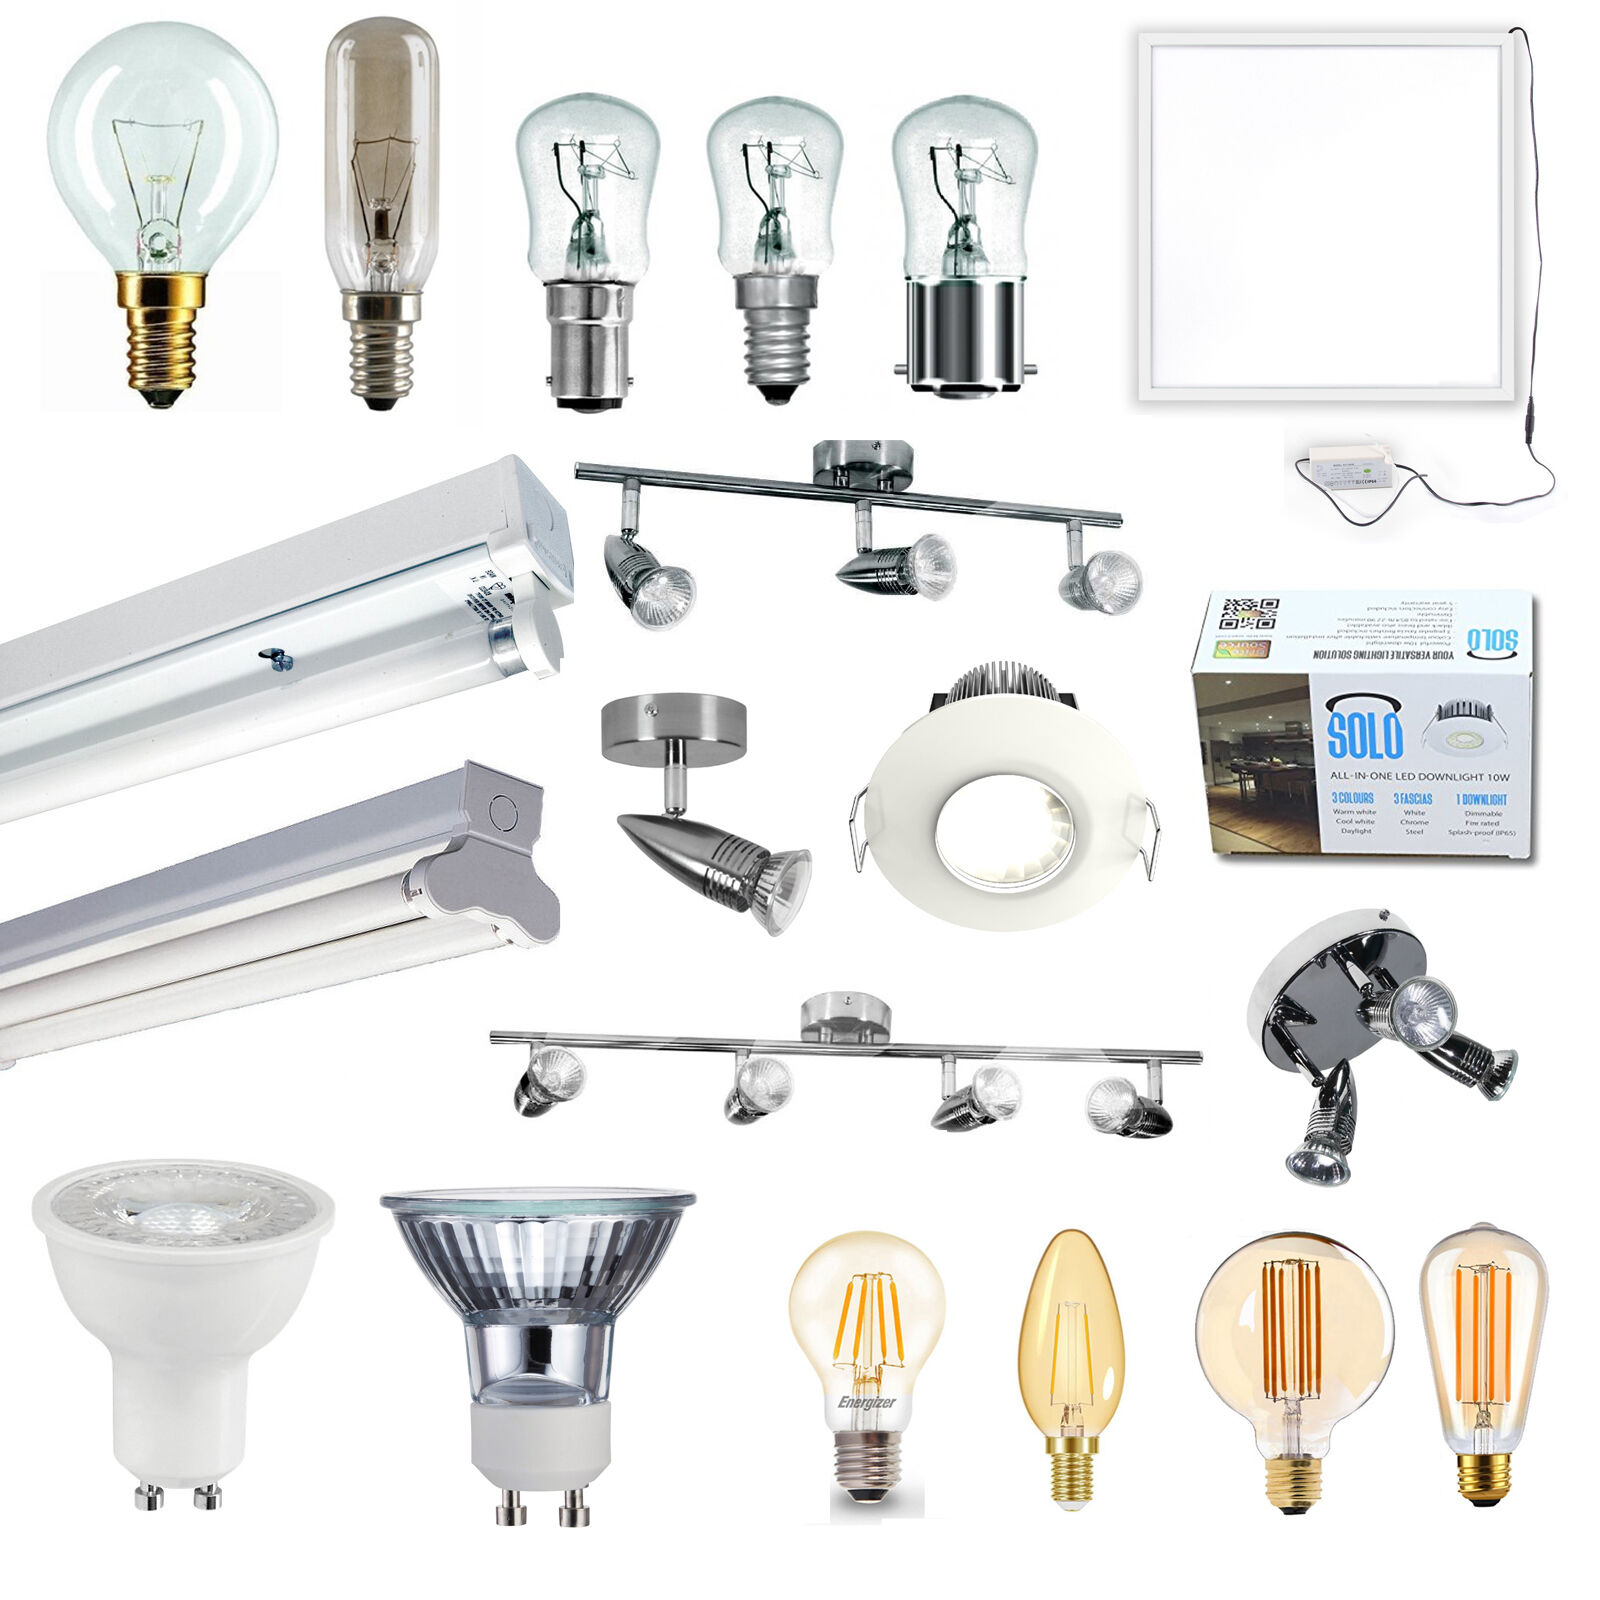 Kitchen Light Fittings Images: Kitchen Lighting LED / Halogen / Fluorescent Appliance Lamps Fittings Spotlights